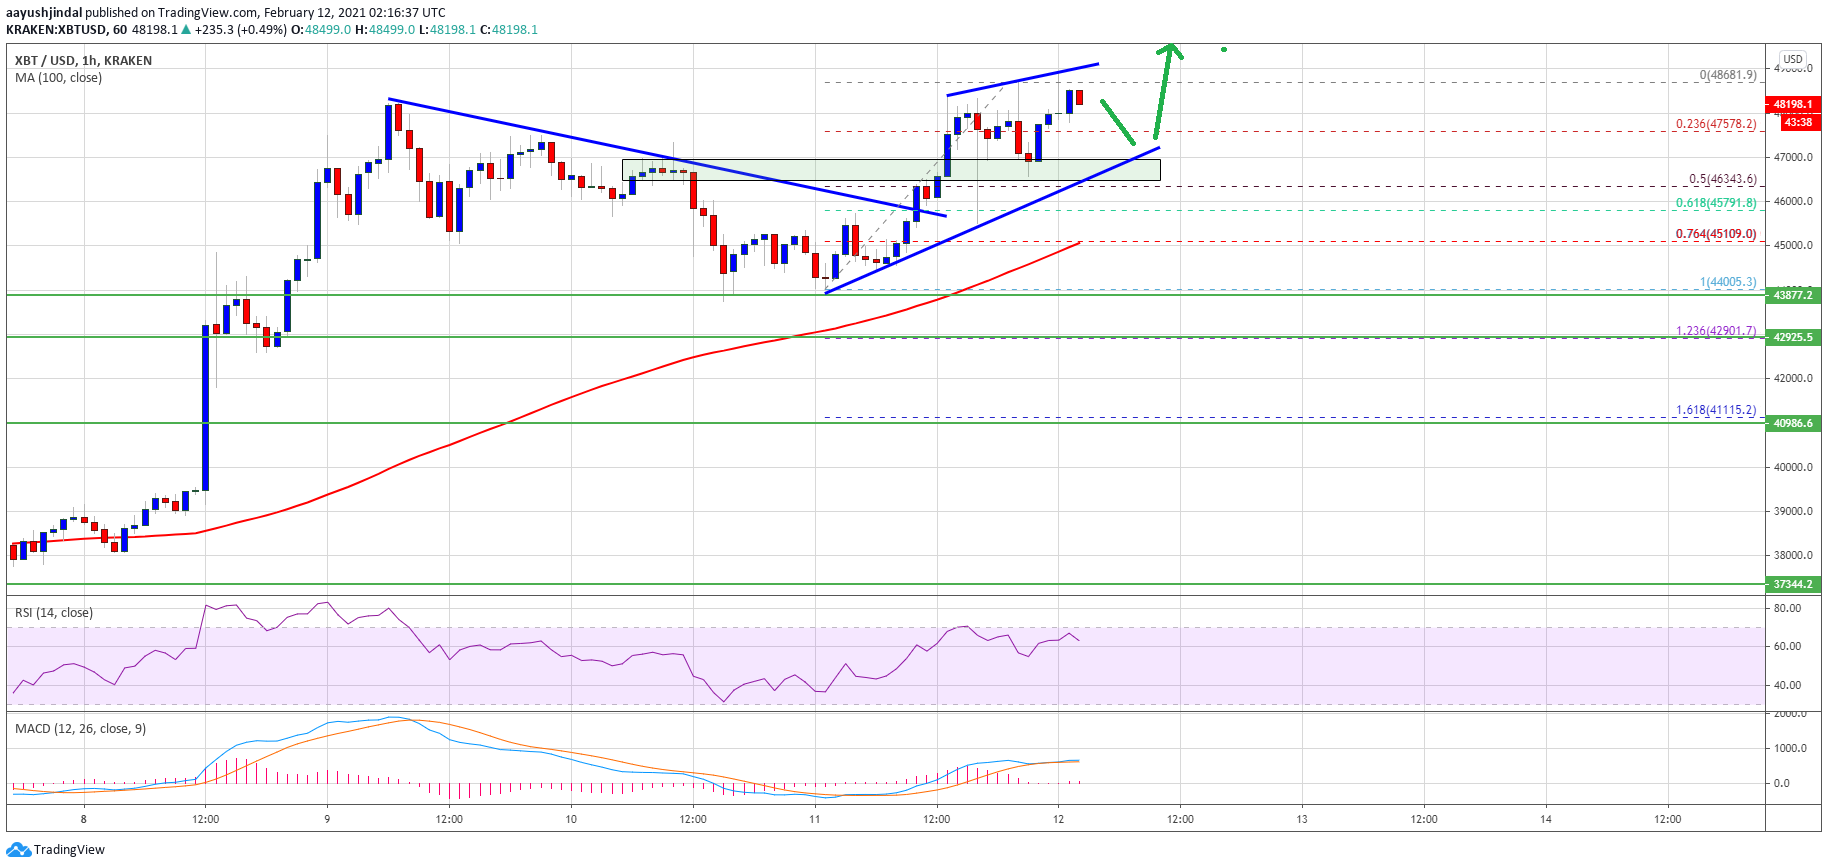 TA: Why Bitcoin Bulls Could Aim $50K After Recent Rally To $48.6K